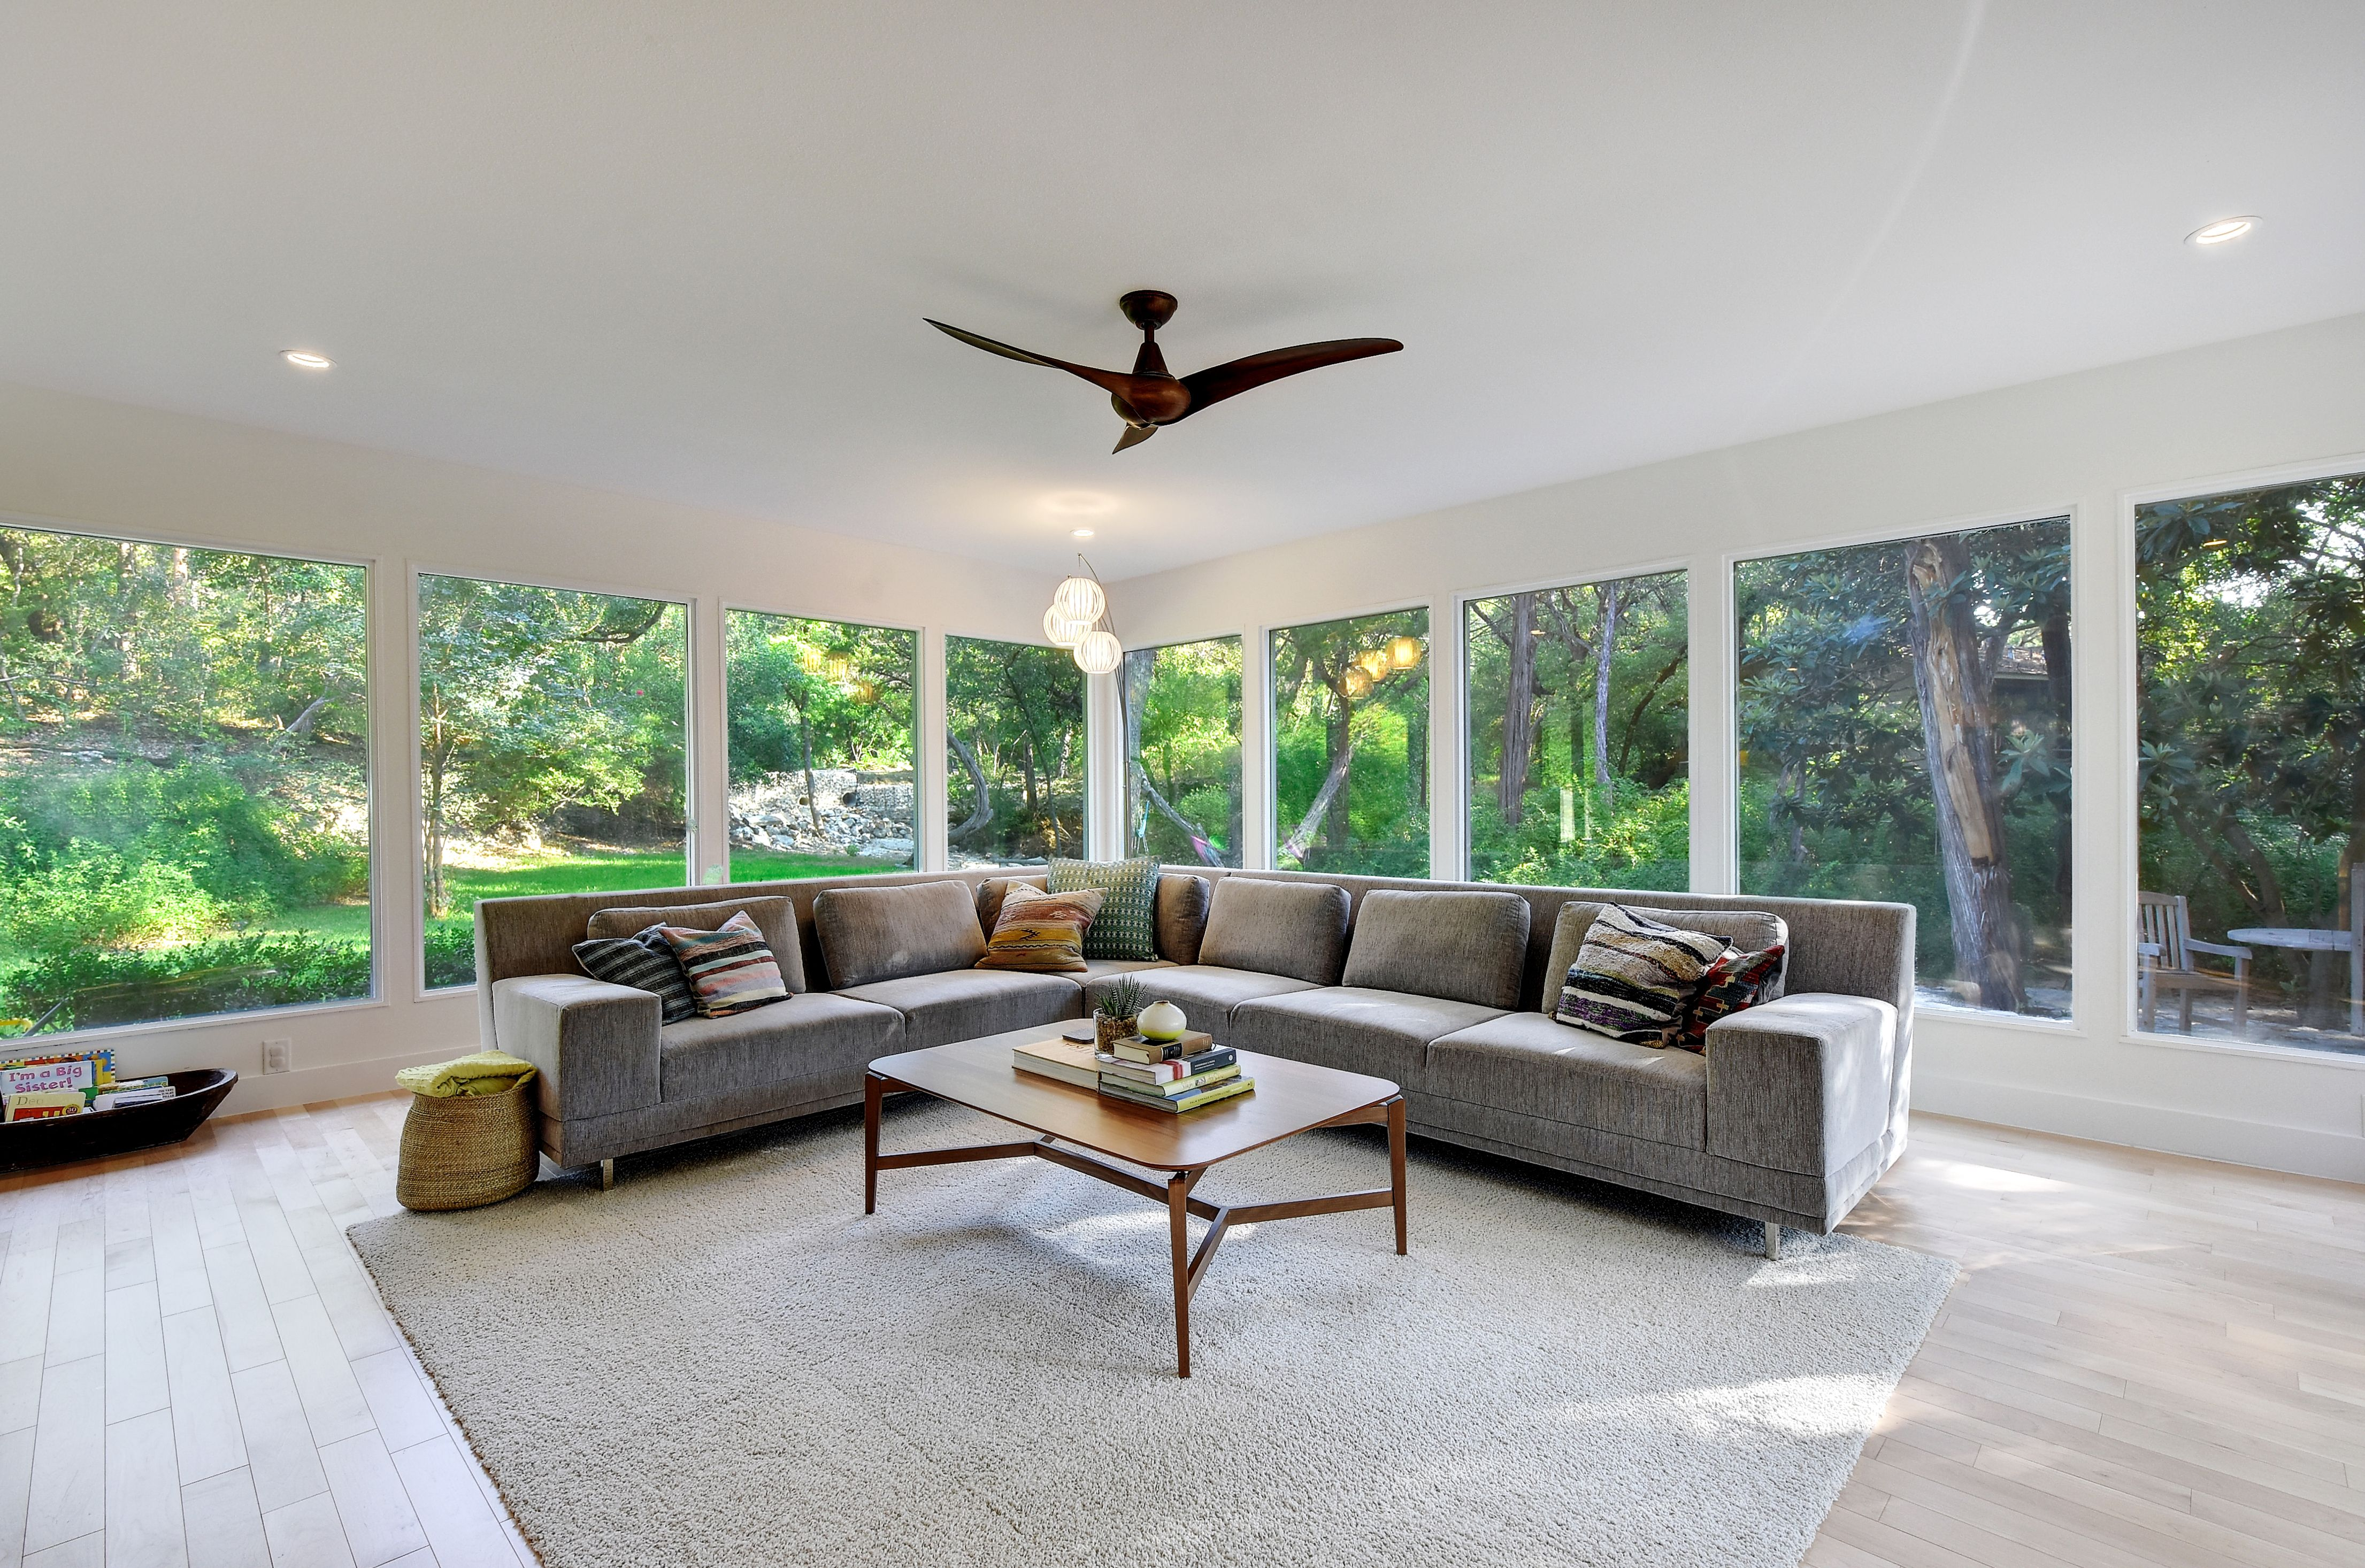 Austin Remodeling Contractor | Interior remodel ... on Backyard Renovation Companies id=28592